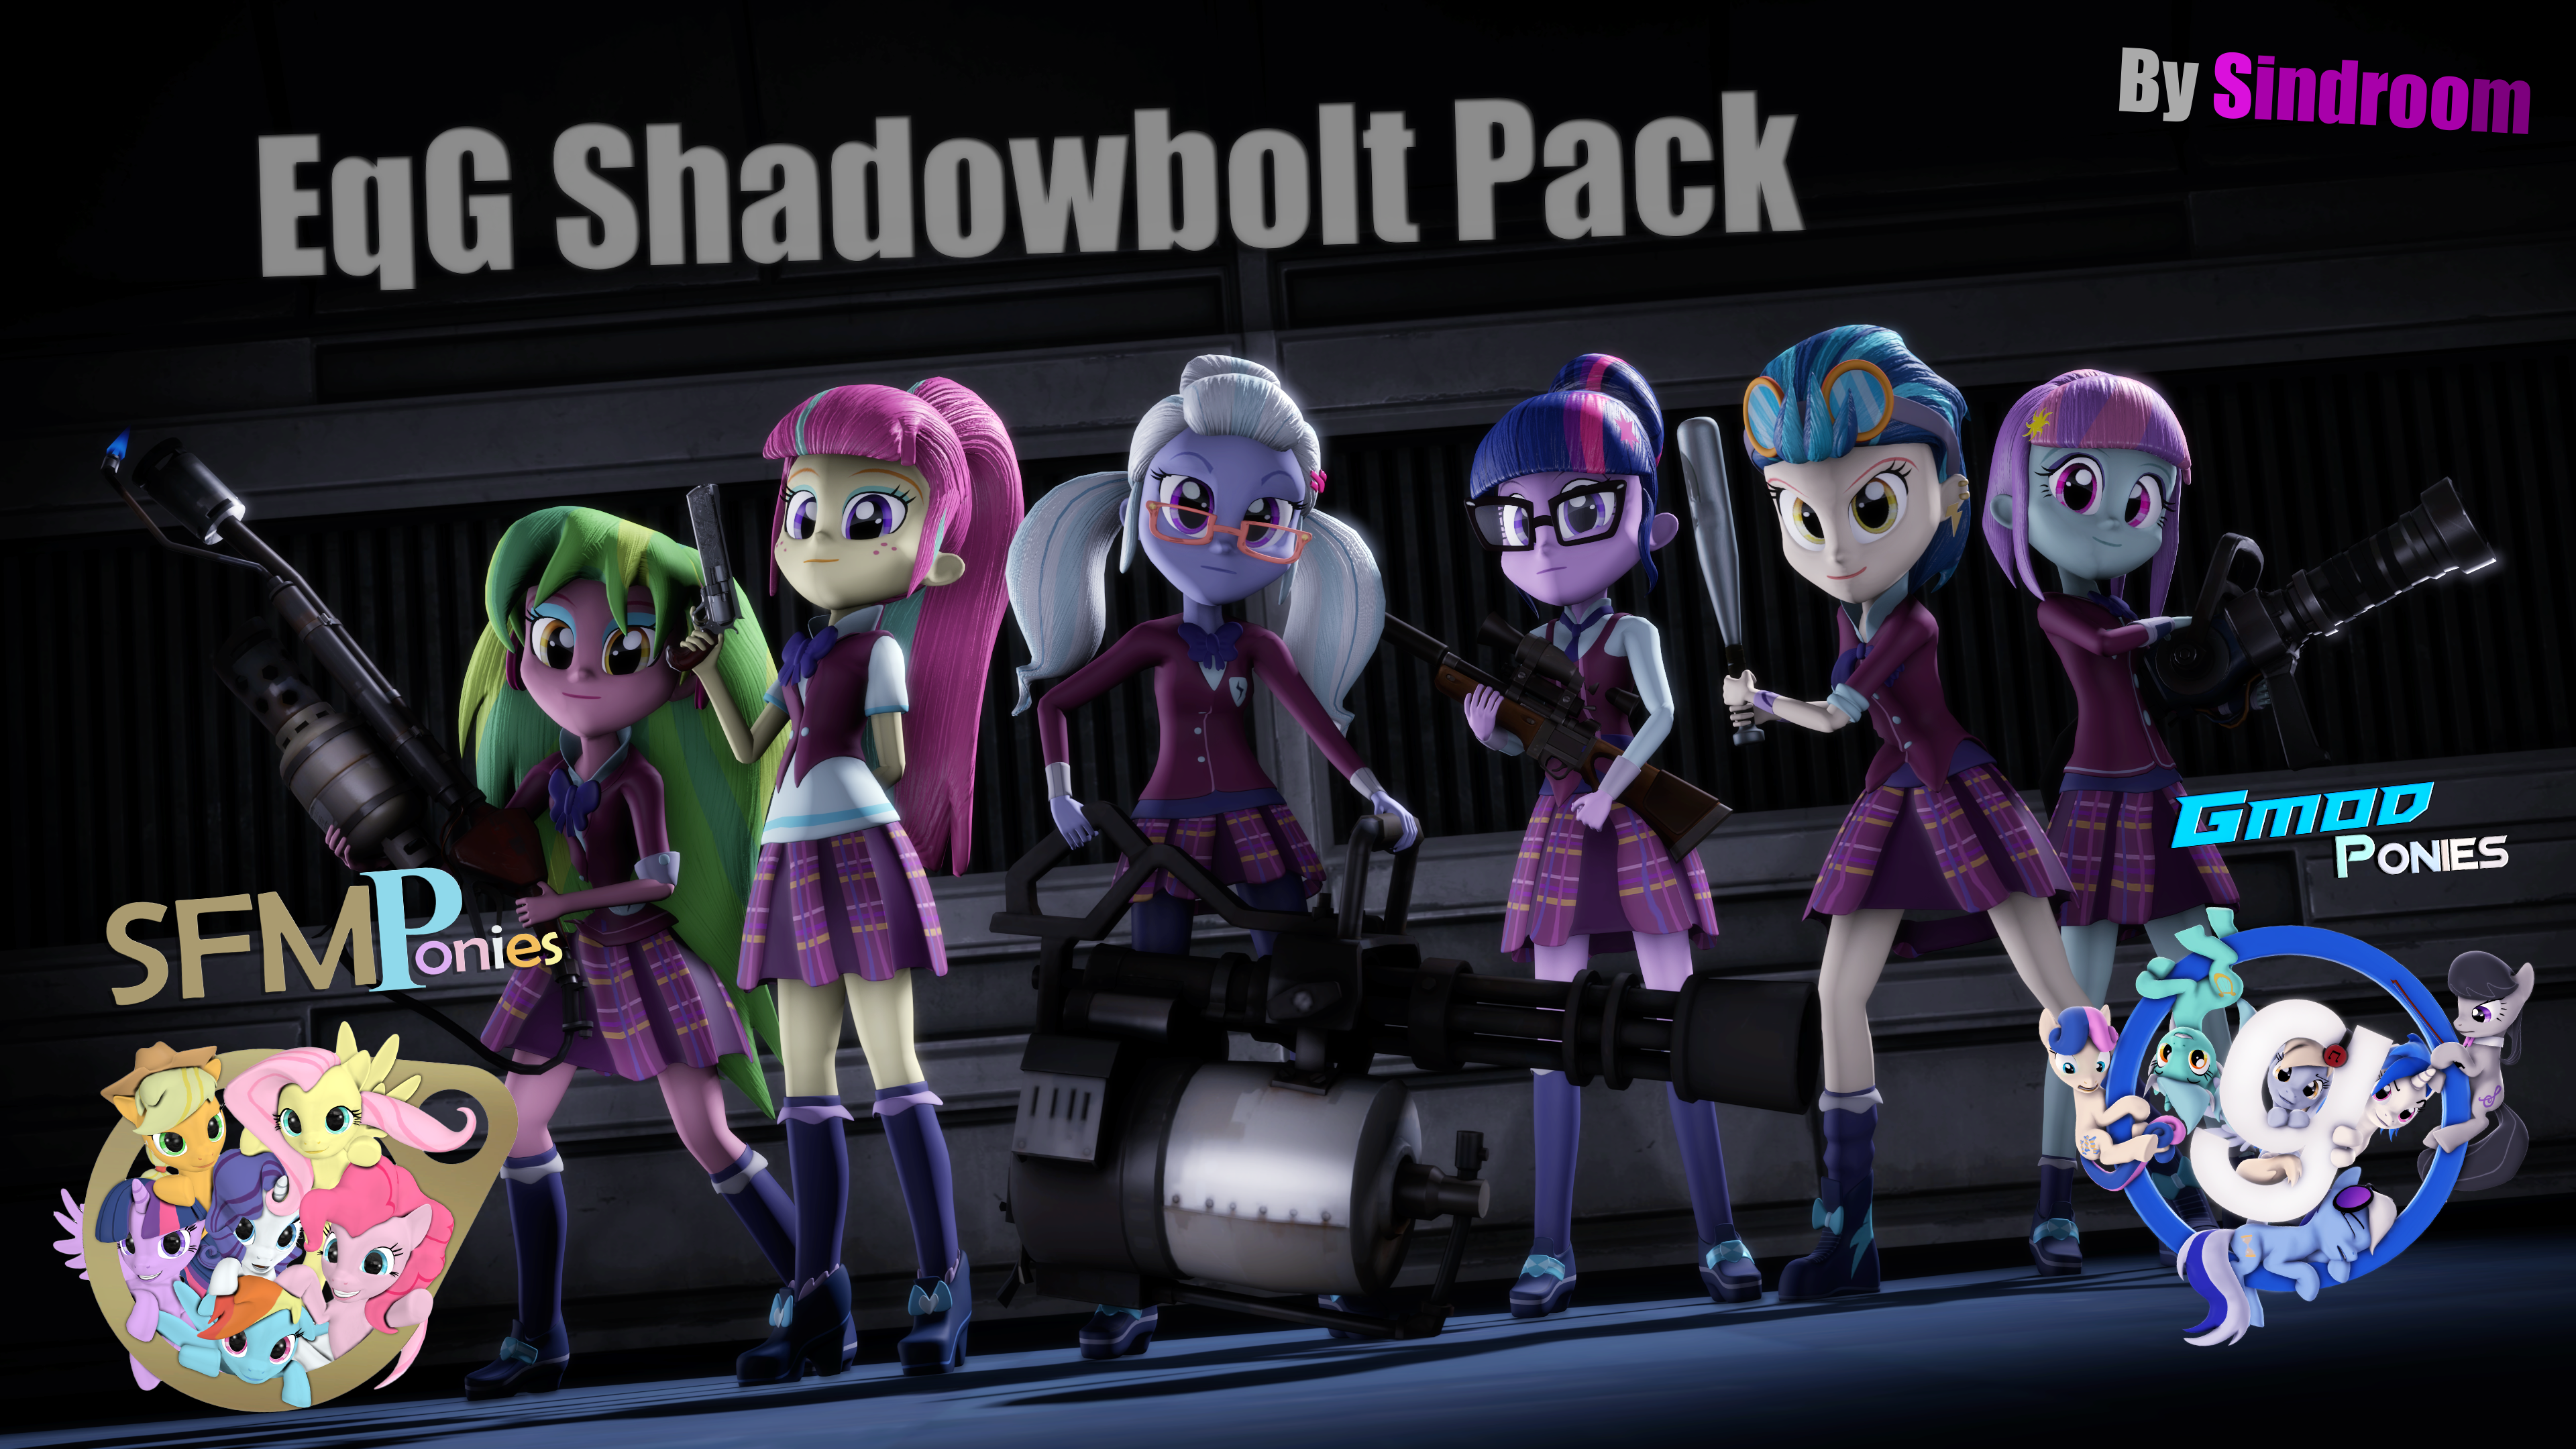 SFM/Gmod] EqG Shadowbolts Pack v1 2 by Sindroom on DeviantArt